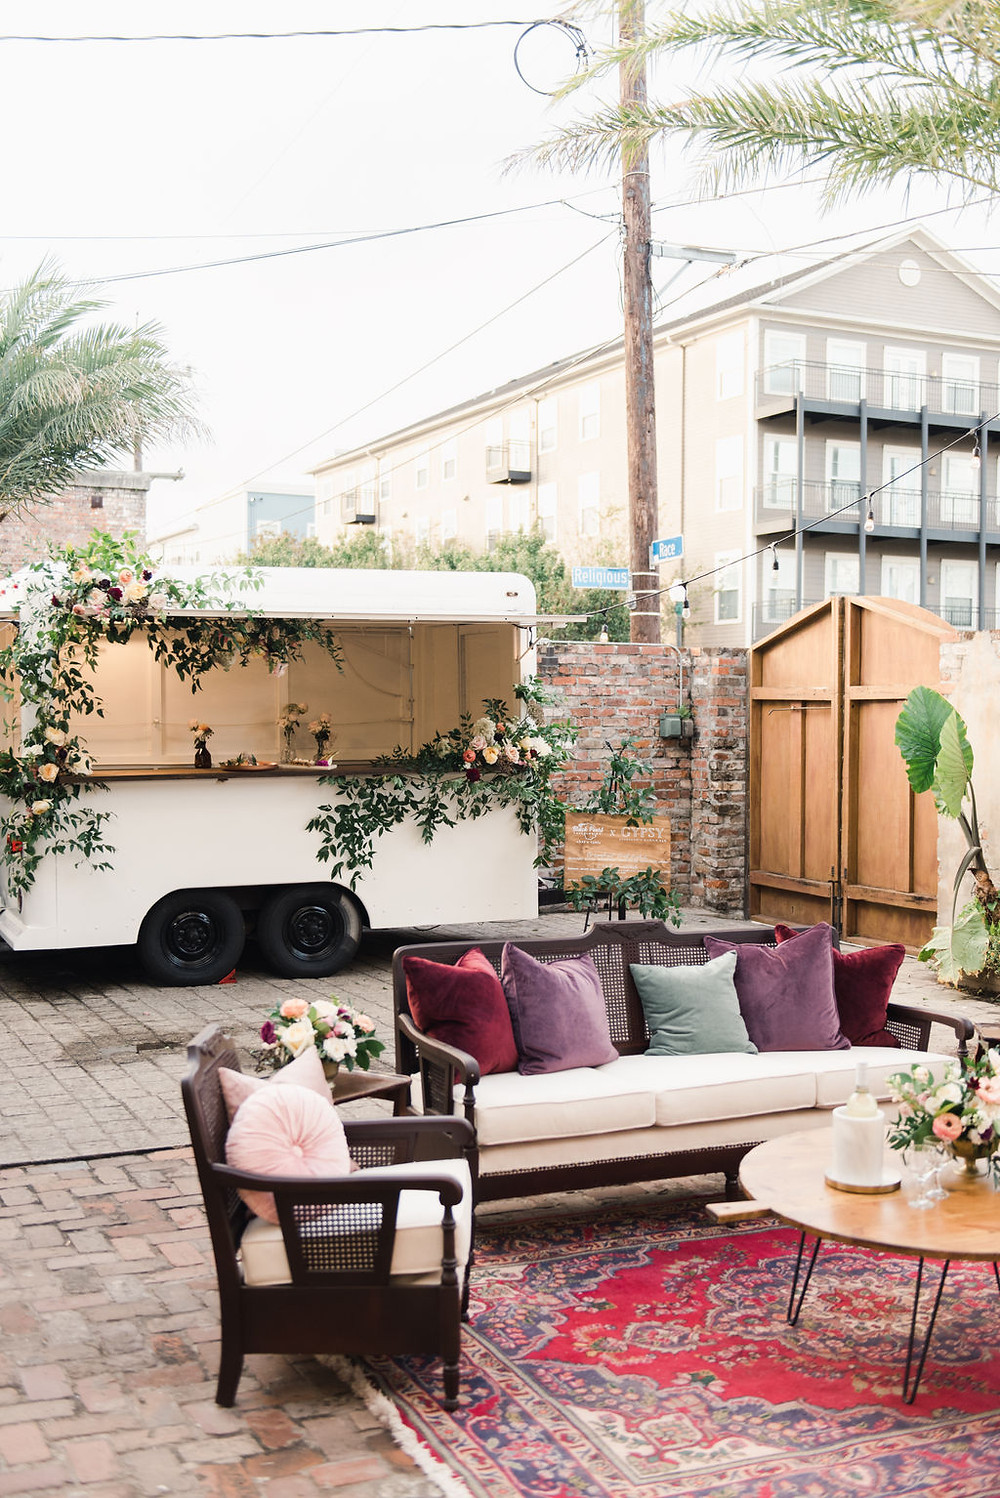 Gypsy, Mobile Bar from Lovegood Wedding & Event Rentals | Black Pearl Catering's Chef's Table X Gypsy Experience with Leaf + Petal NOLA, Race & Religious, and Chelsea Rousey Photography in New Orleans